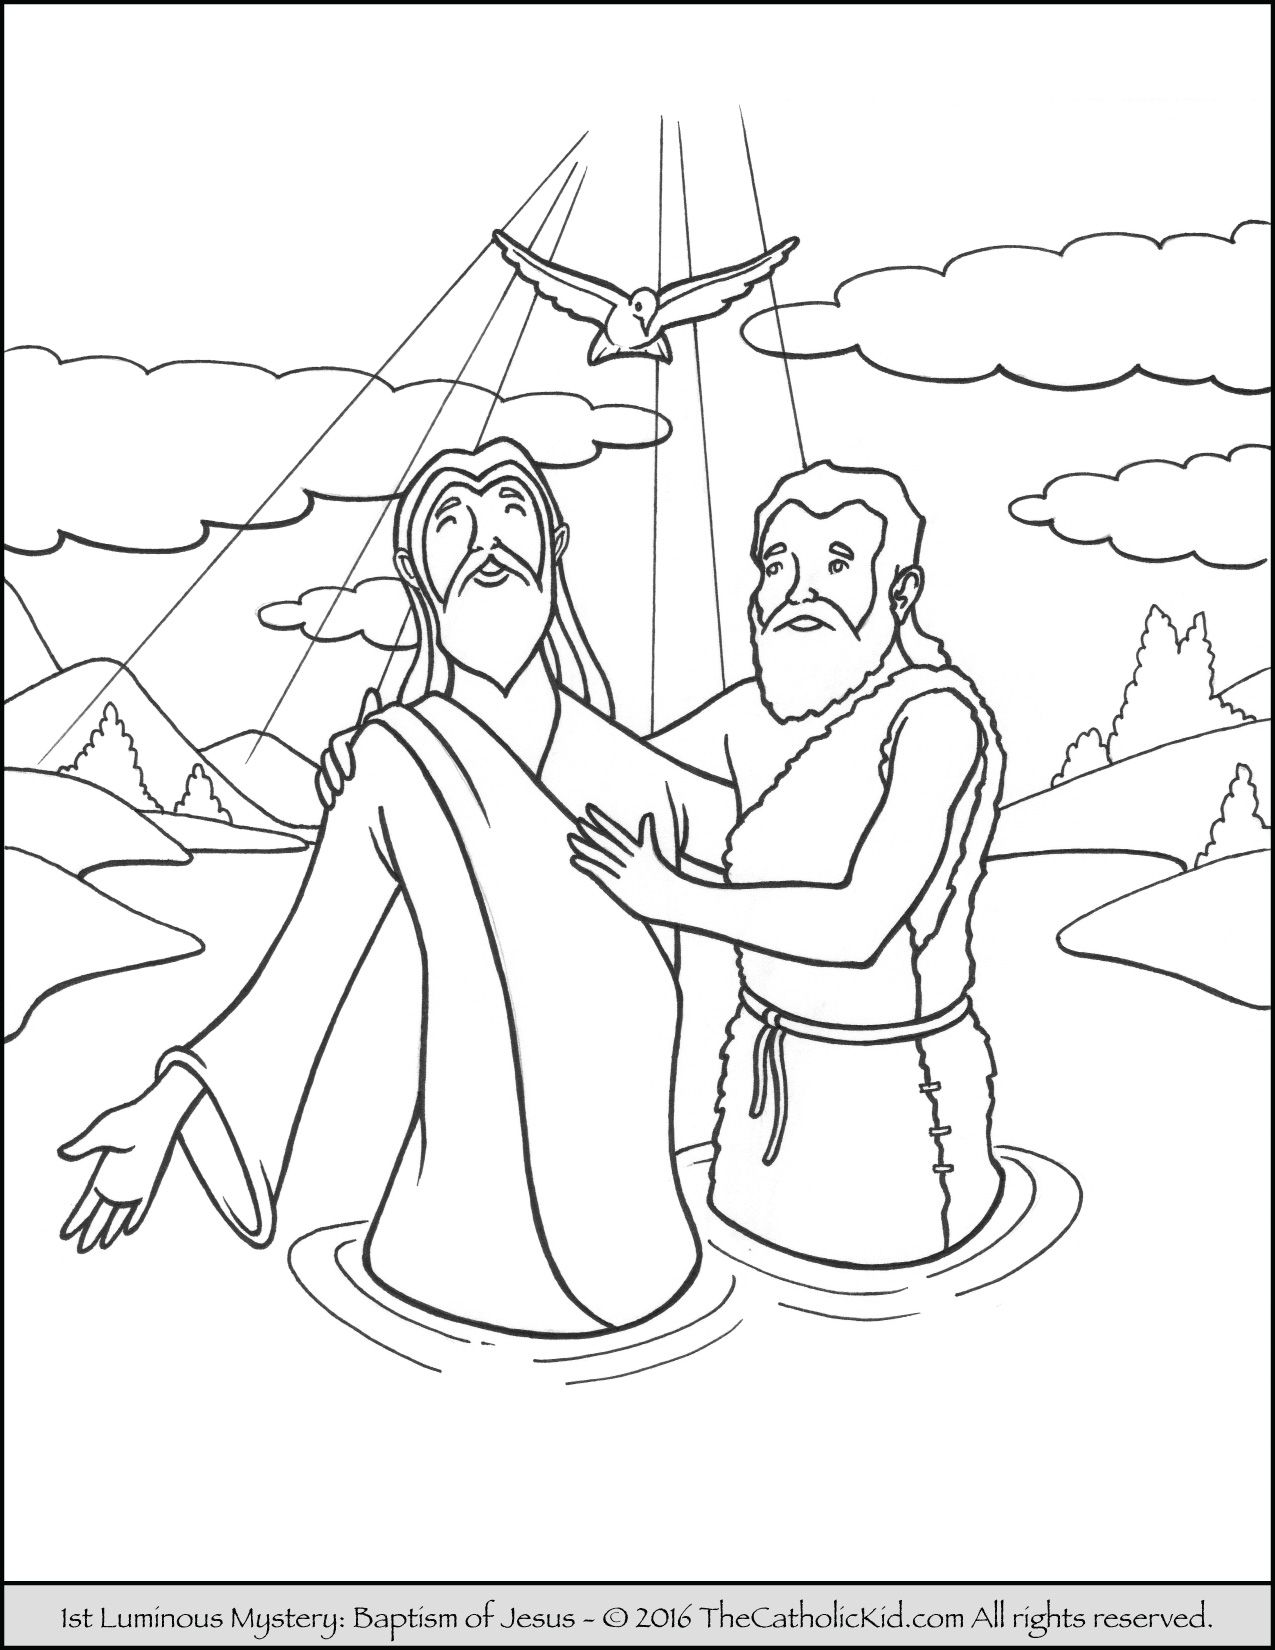 The 1st Luminous Mysteries Rosary Coloring Pages Baptism of